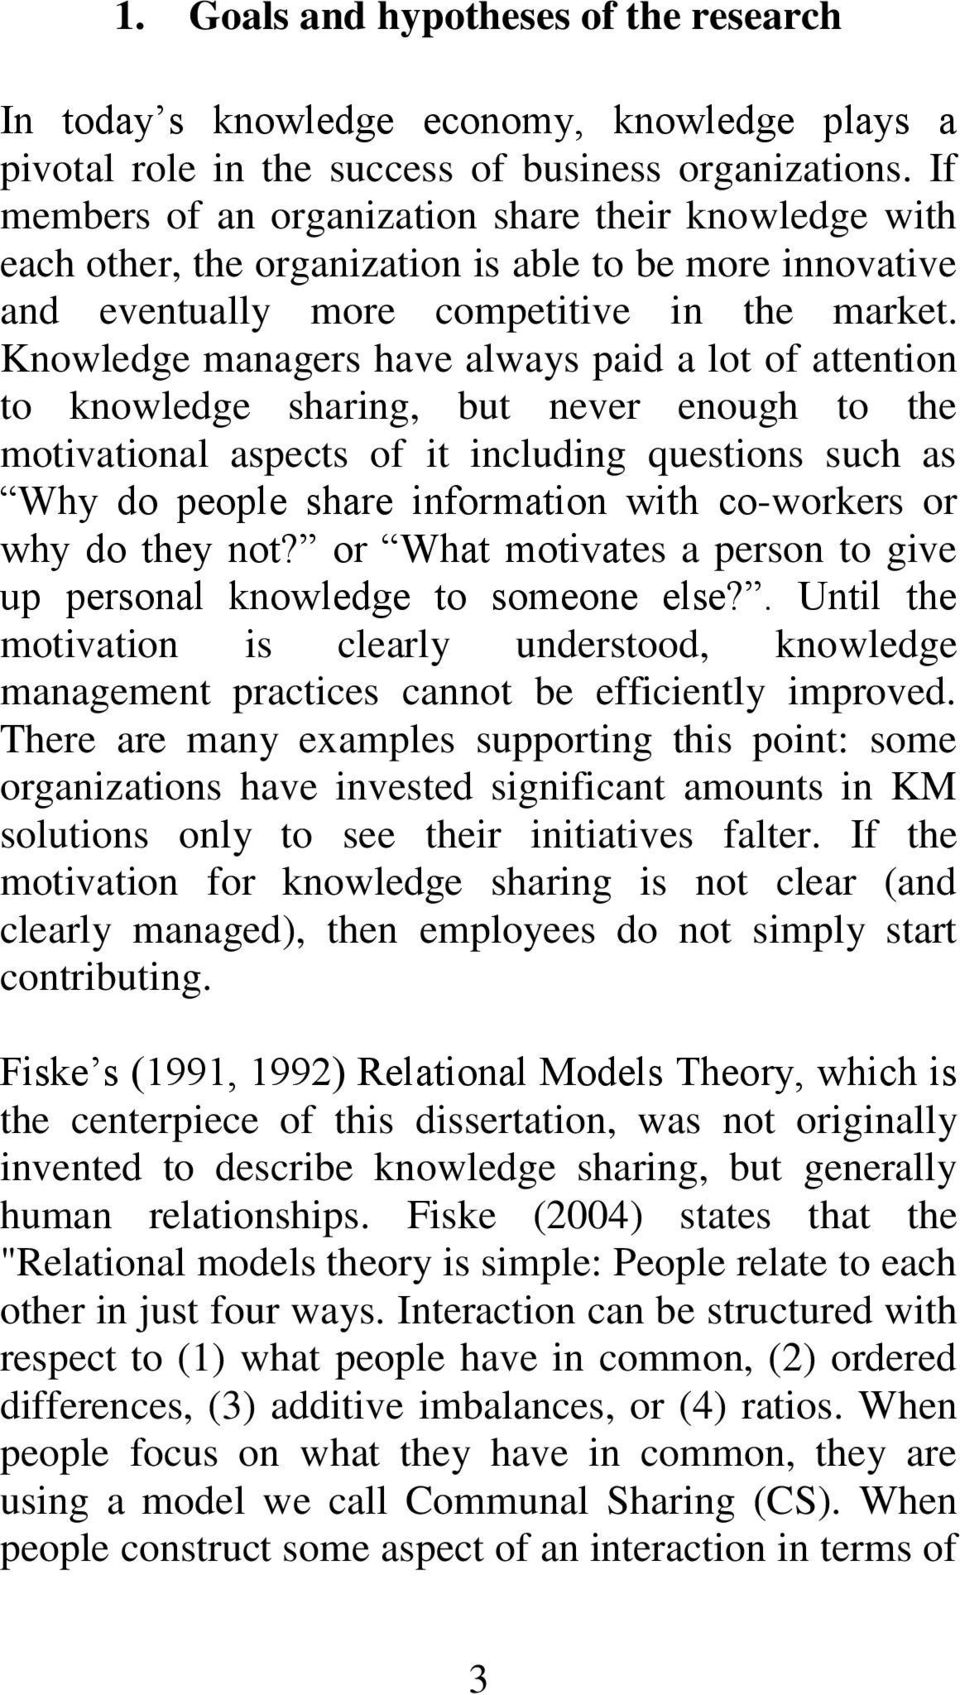 Knowledge managers have always paid a lot of attention to knowledge sharing, but never enough to the motivational aspects of it including questions such as Why do people share information with